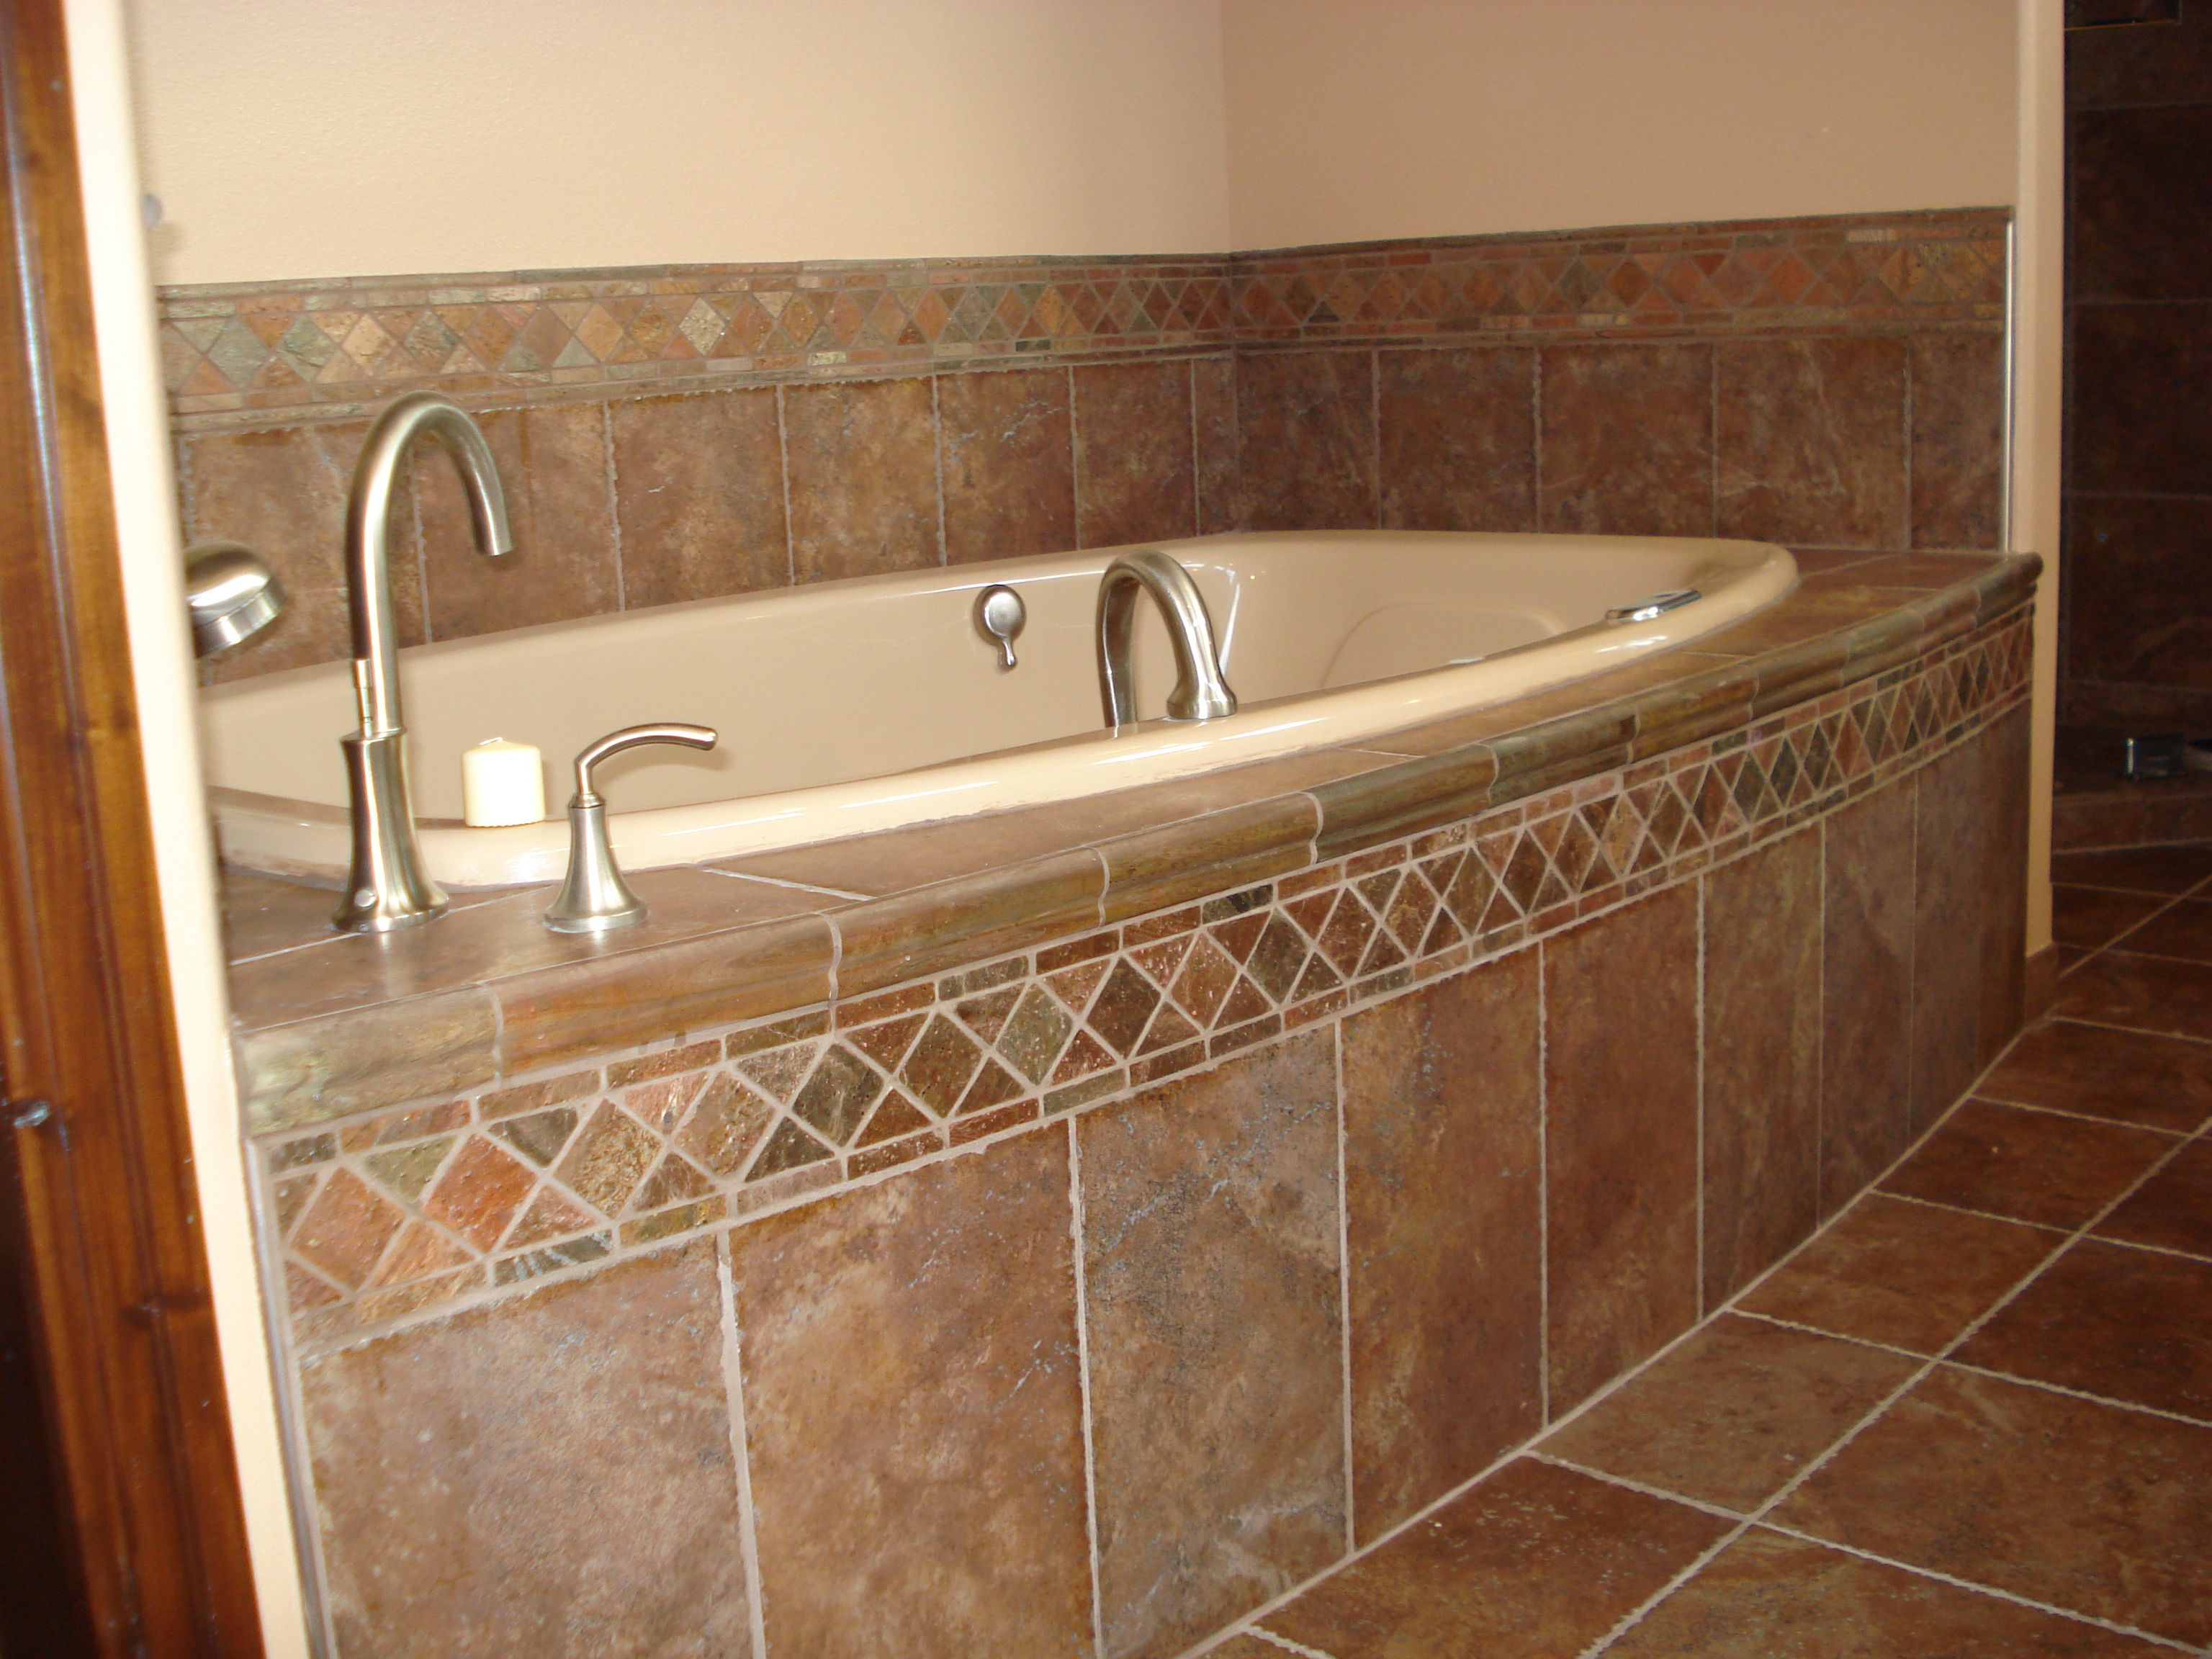 Tile around bathtub ideas browse our photo gallery for for Bathroom tub tile design ideas